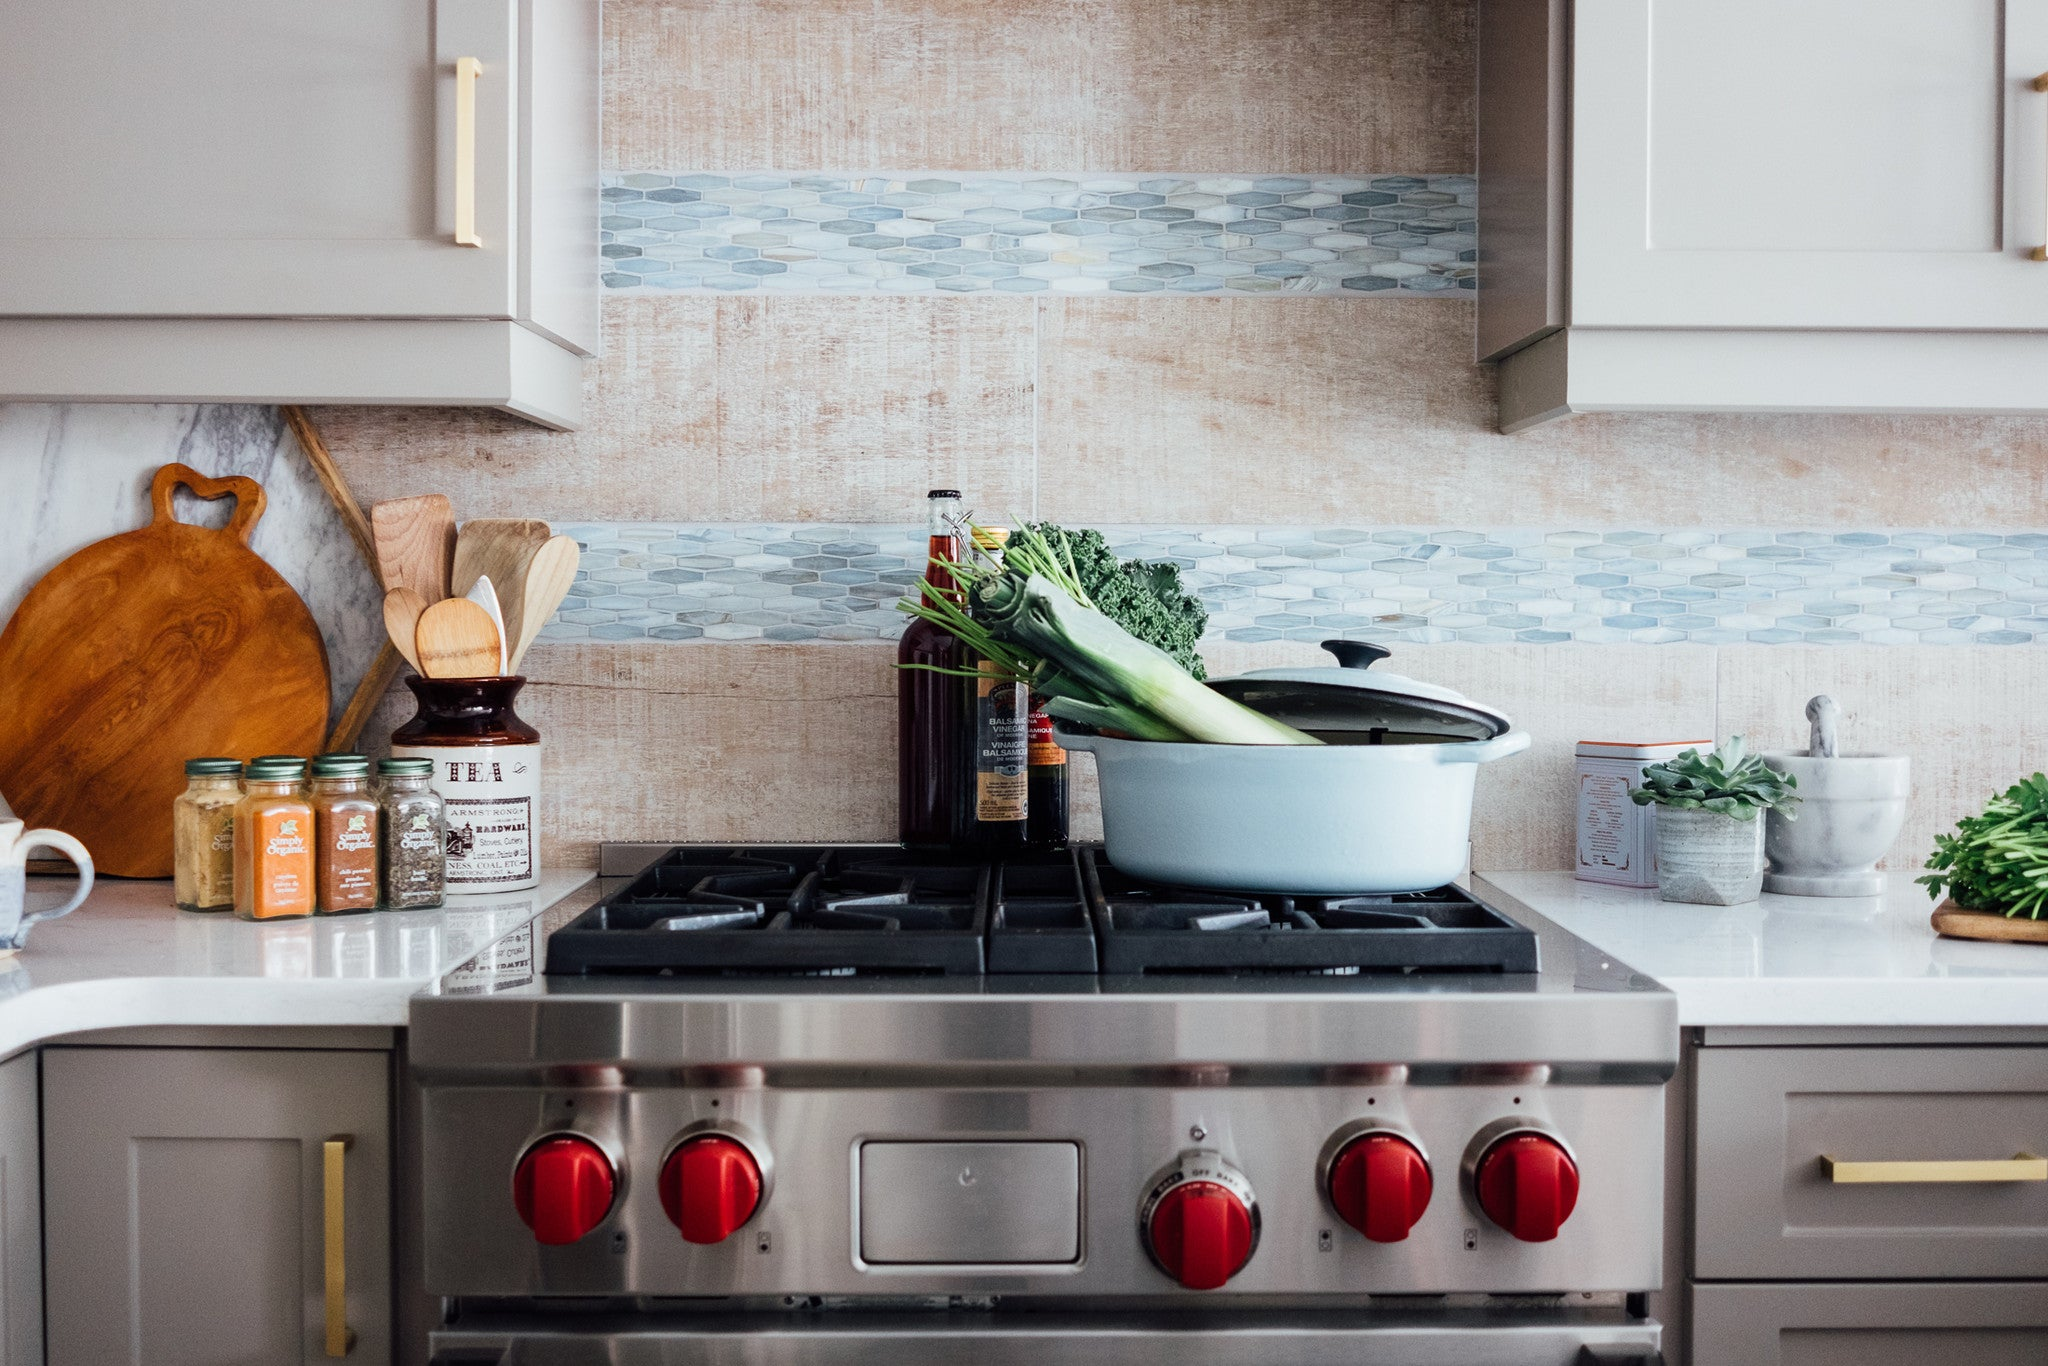 Kitchen interior design with stove and tile backsplash